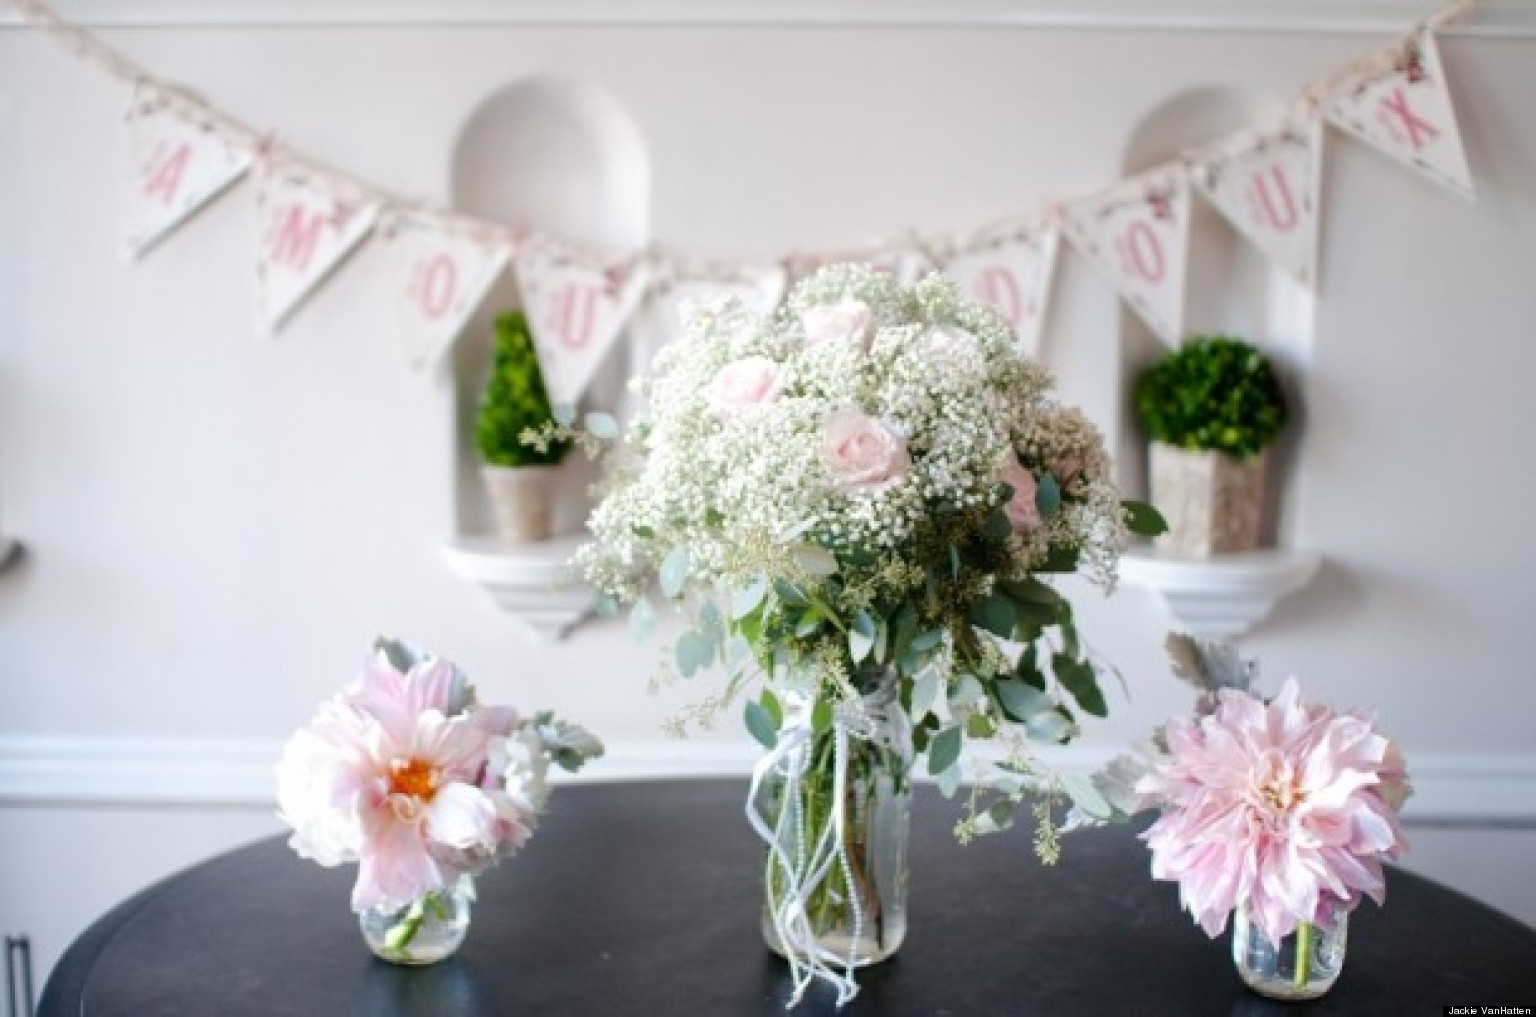 Wedding Flowers: 4 Centerpieces For Your Bridal Shower